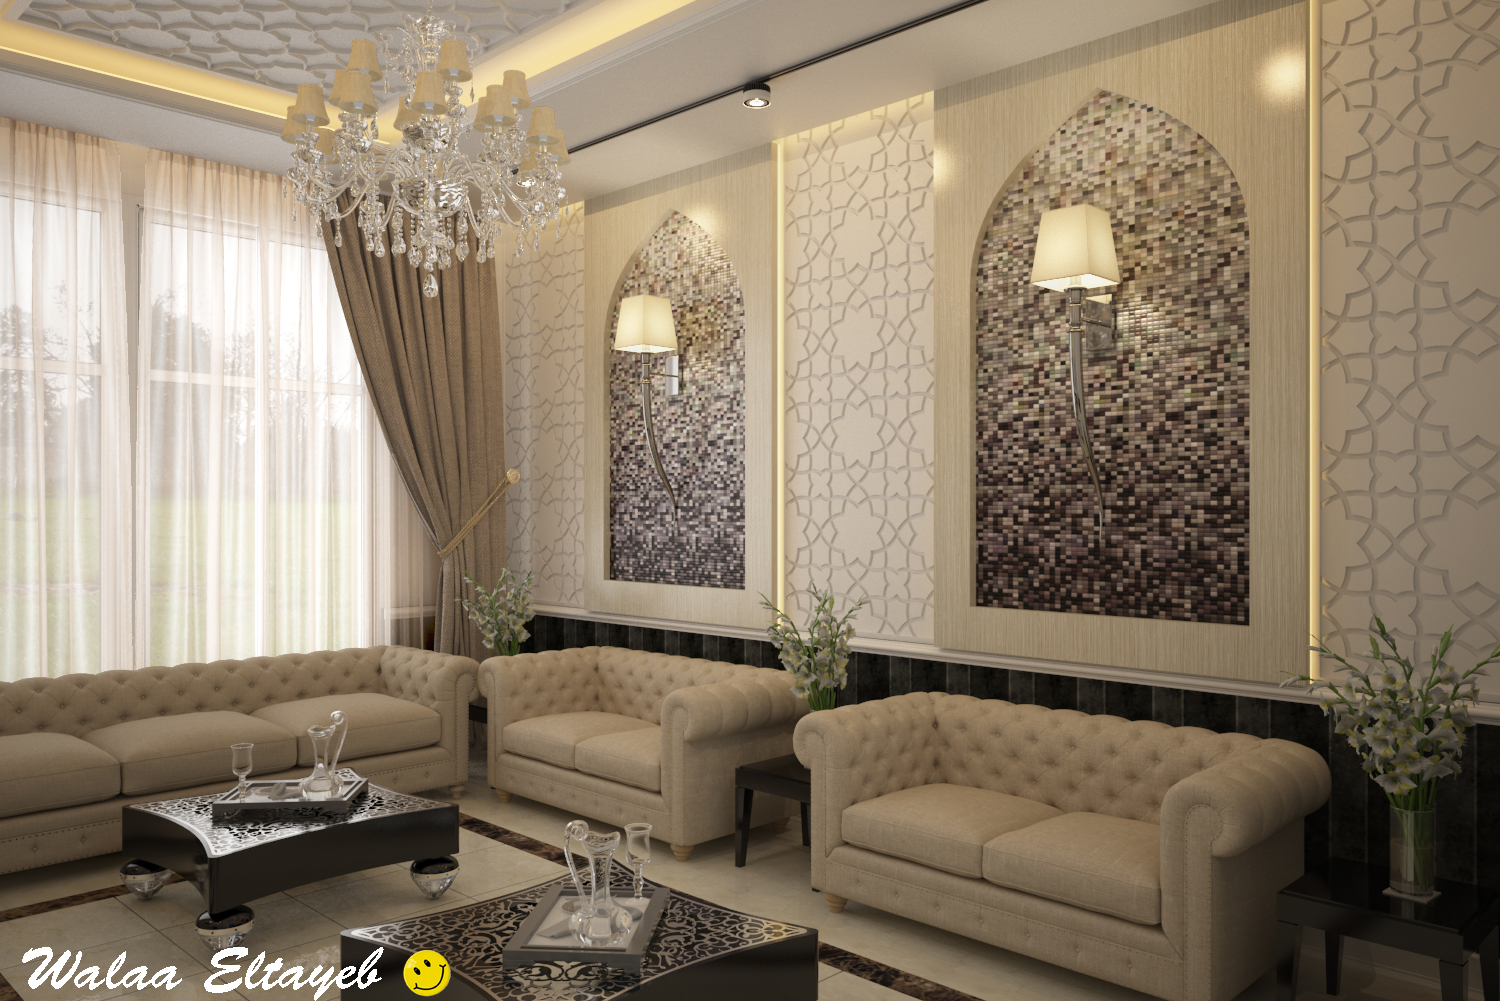 Salon interance hall walaadesigns for As interior design